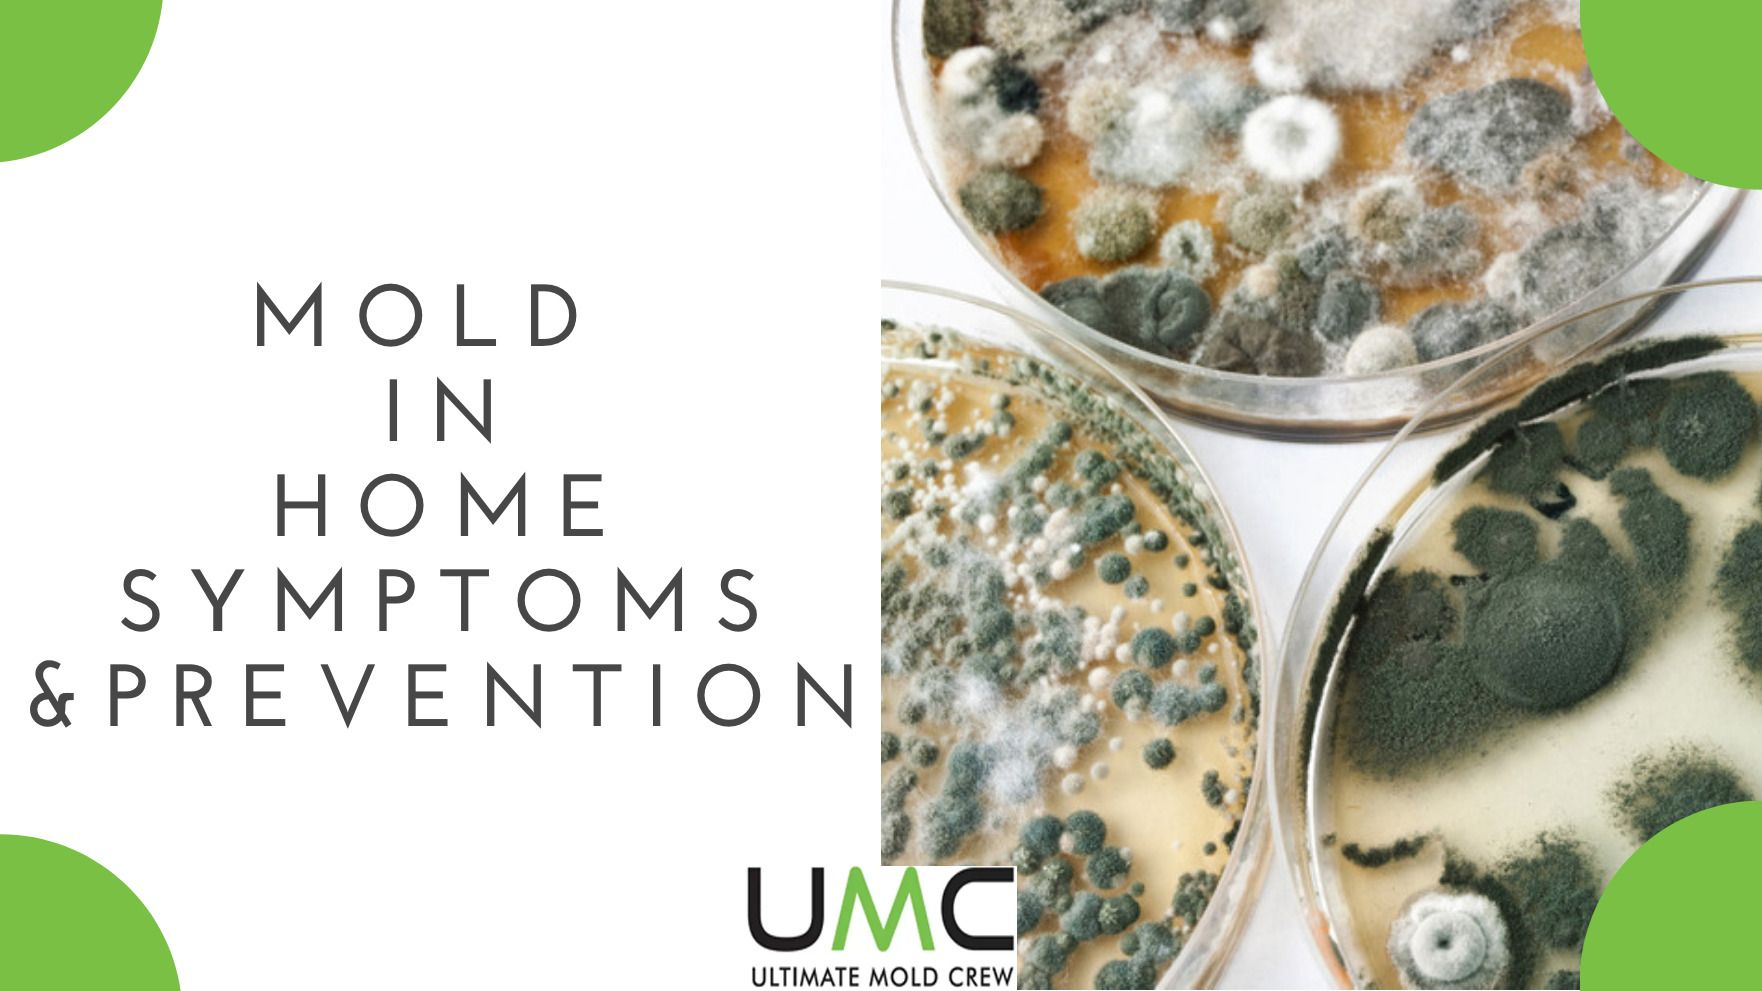 Mold IN HOME PREVENTION TIPS